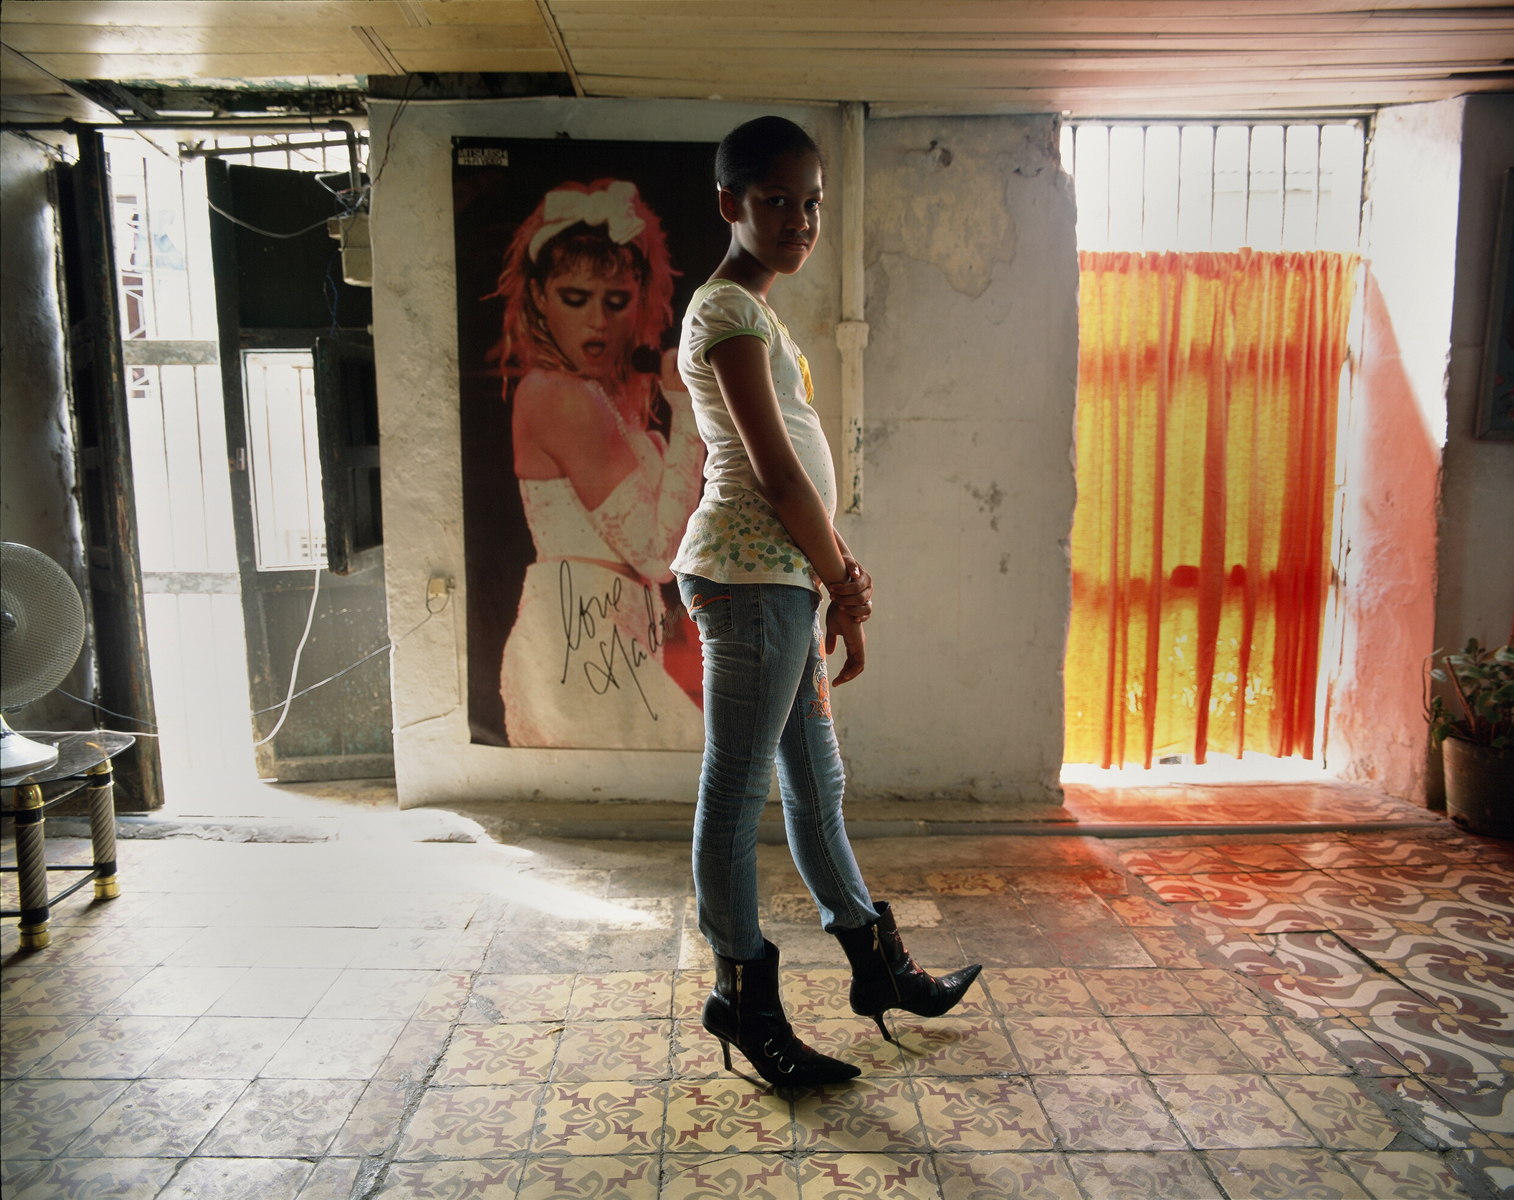 Nazarena, who kept chasing me around the neighborhood for days, asking me when I will photograph her again? She wanted to be photographed wearing her new boots, in front of Madonna.Havana, Cuba